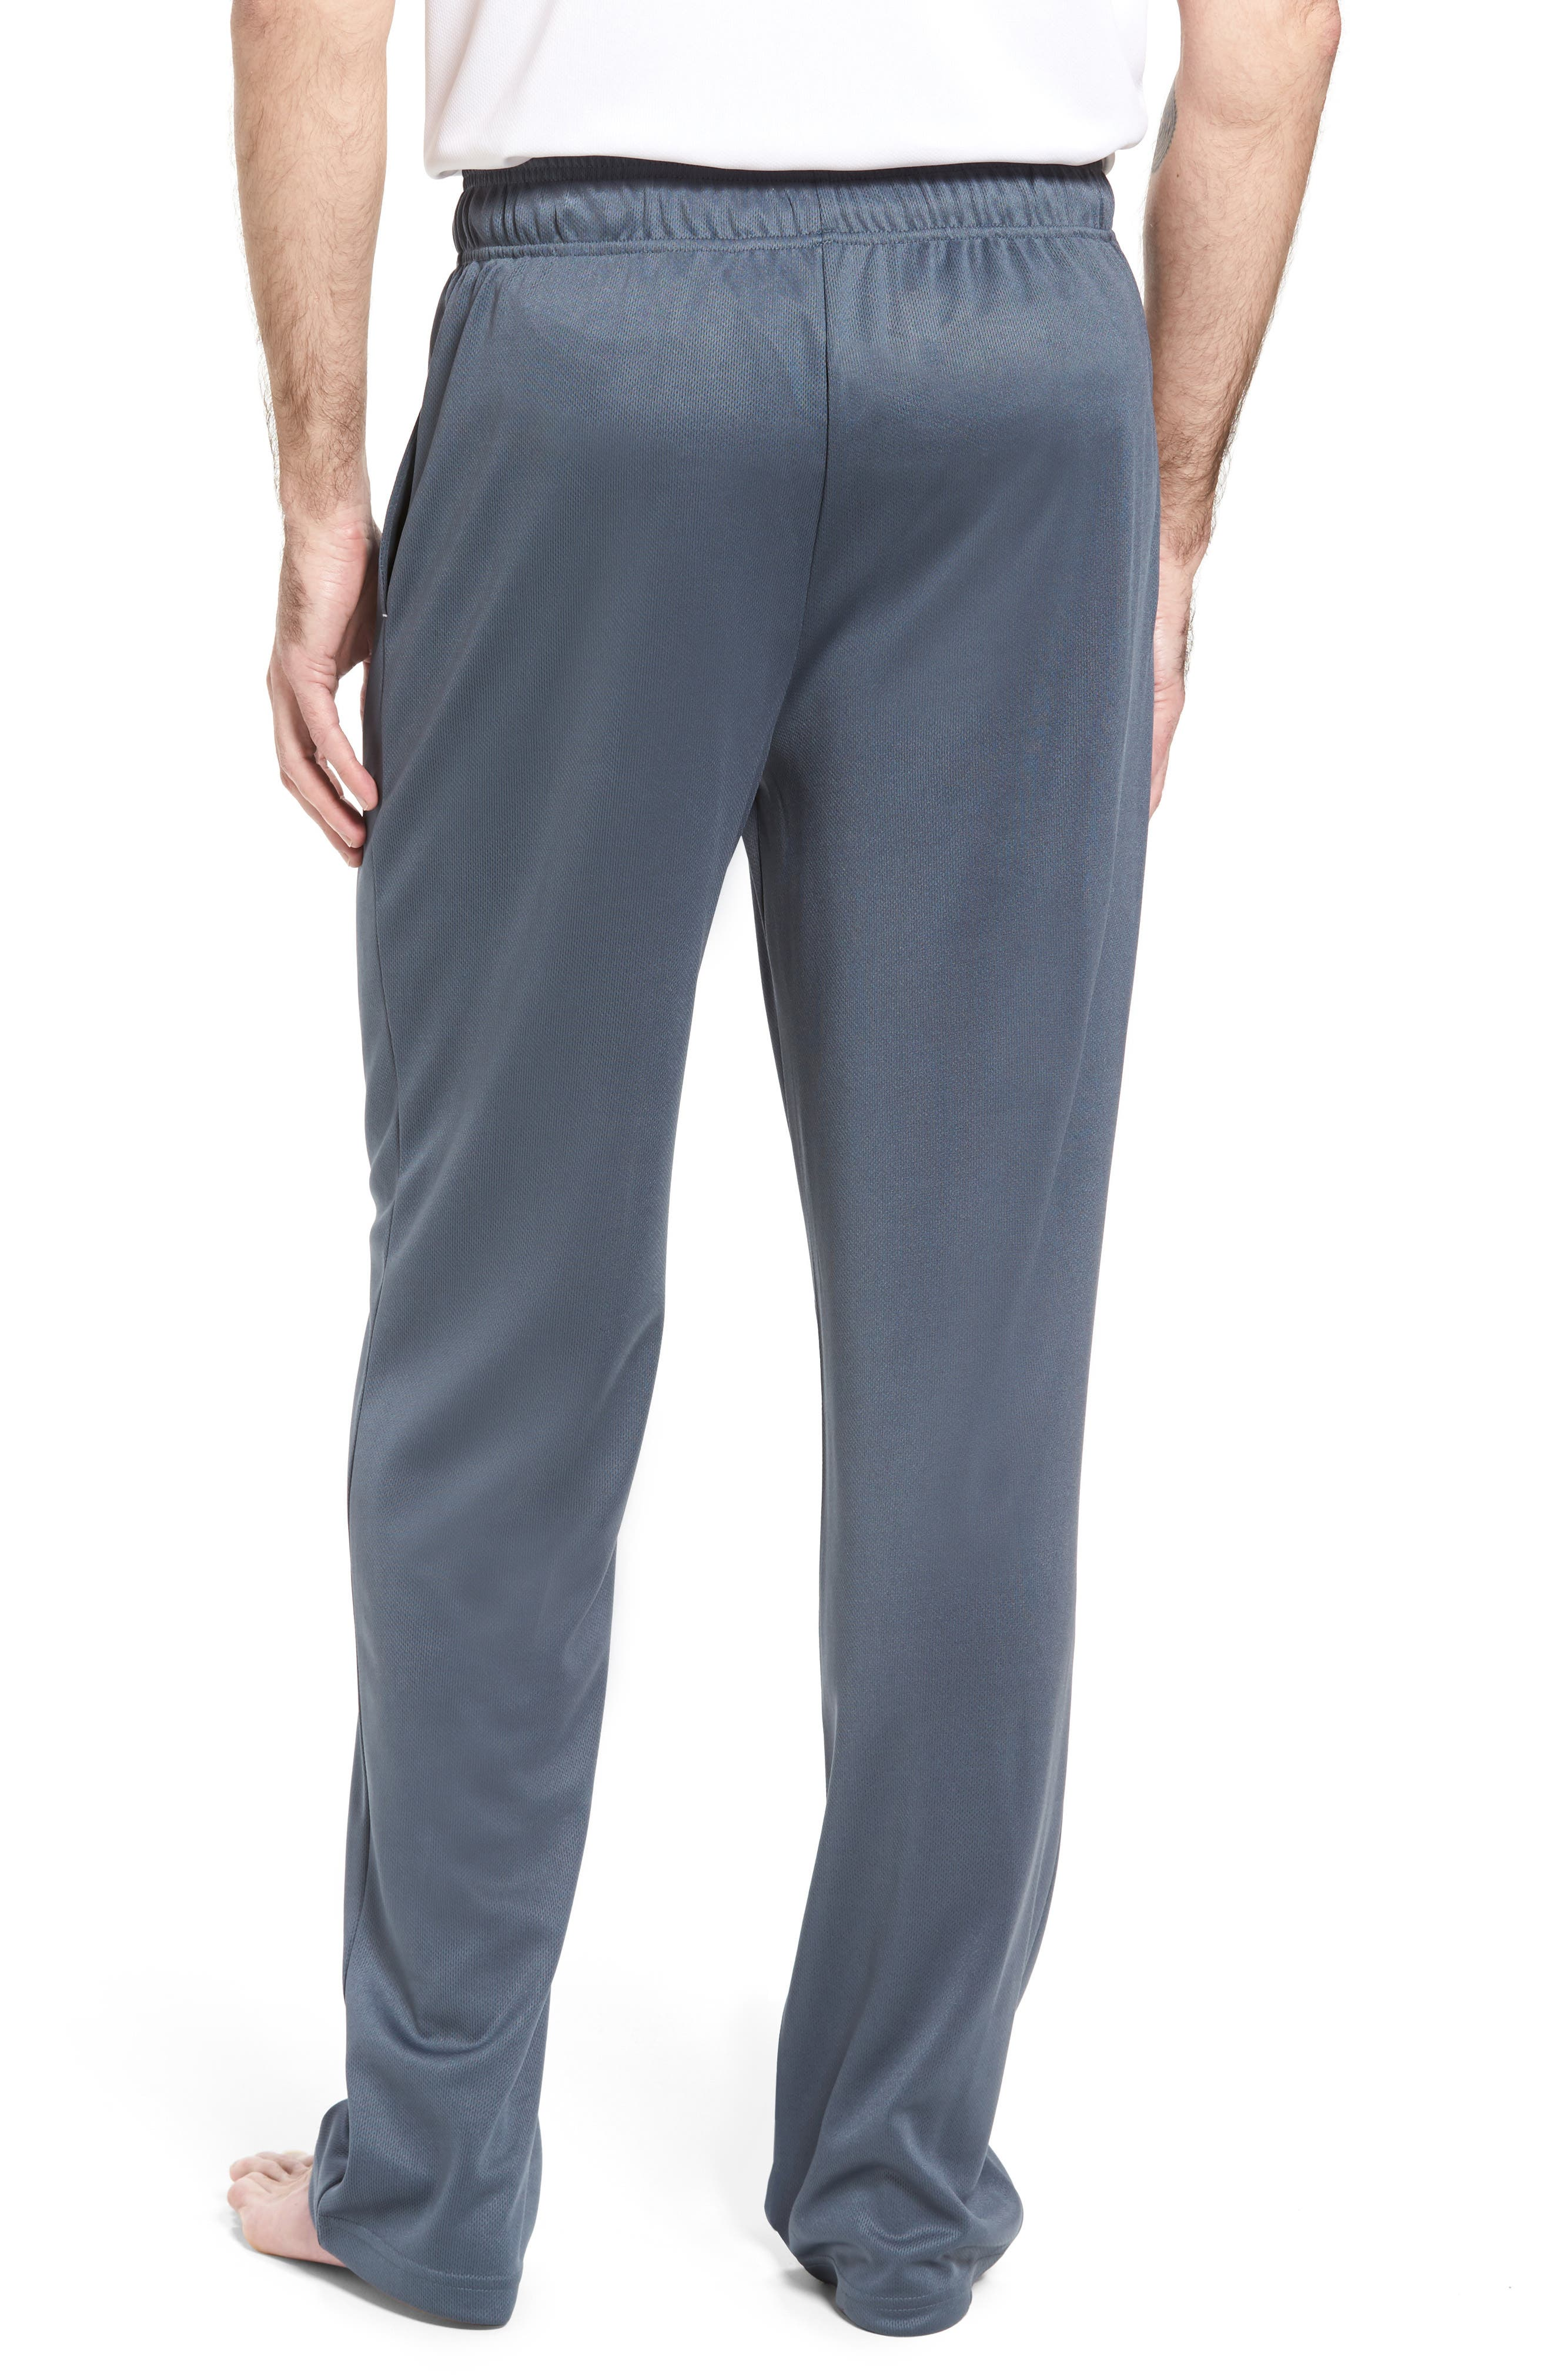 Work Out Lounge Pants,                             Alternate thumbnail 5, color,